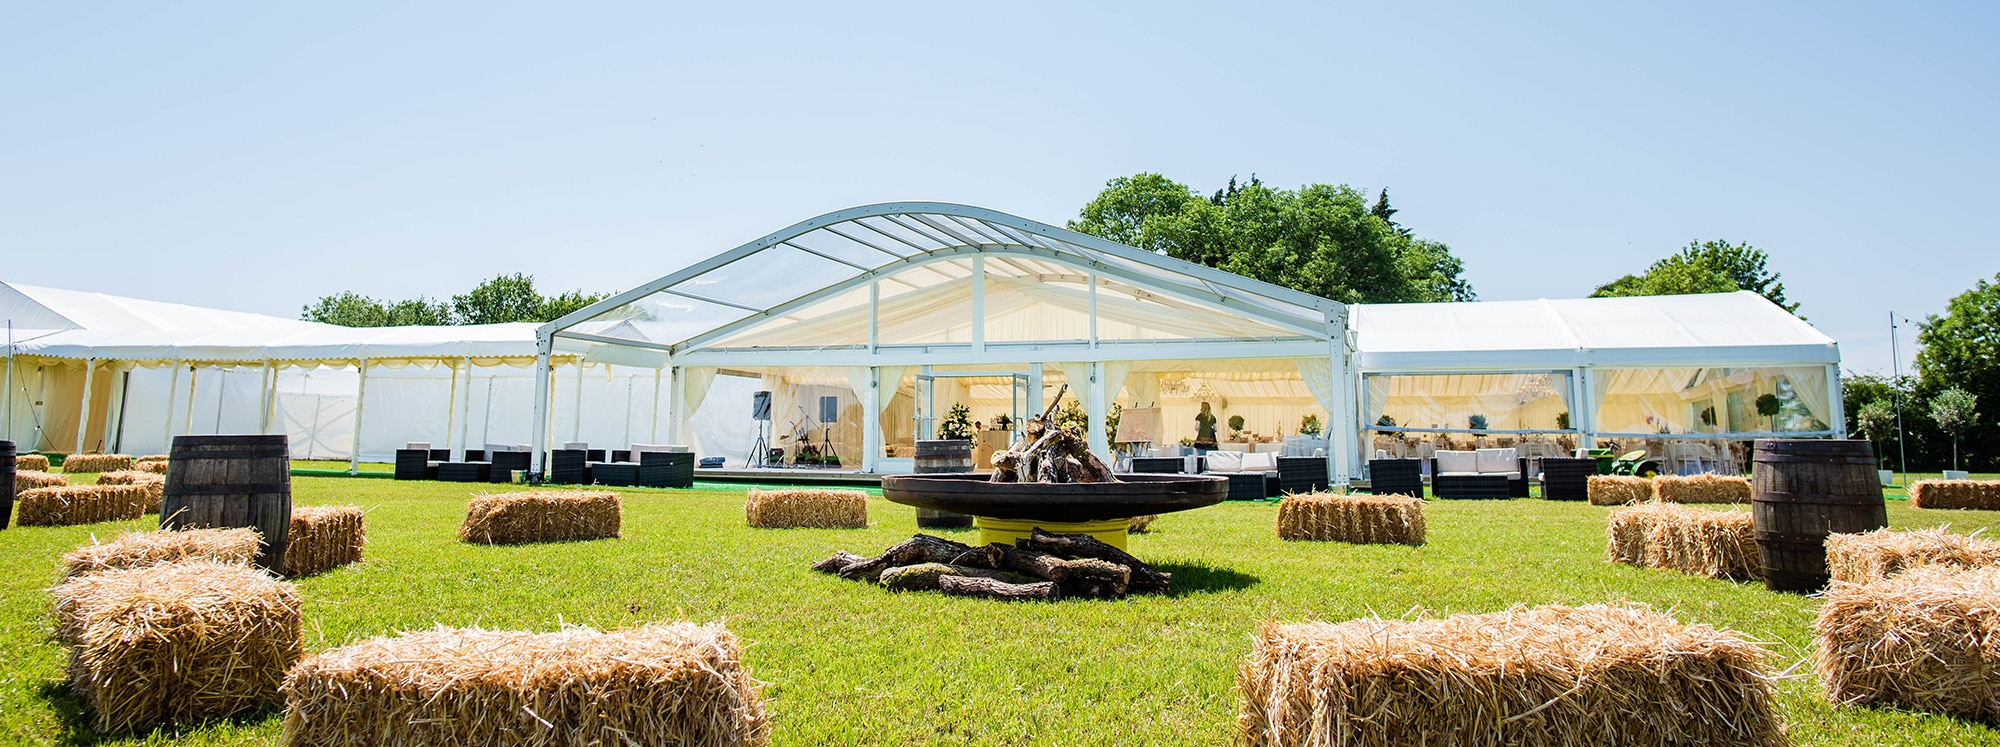 Luxury Country Wedding marquee